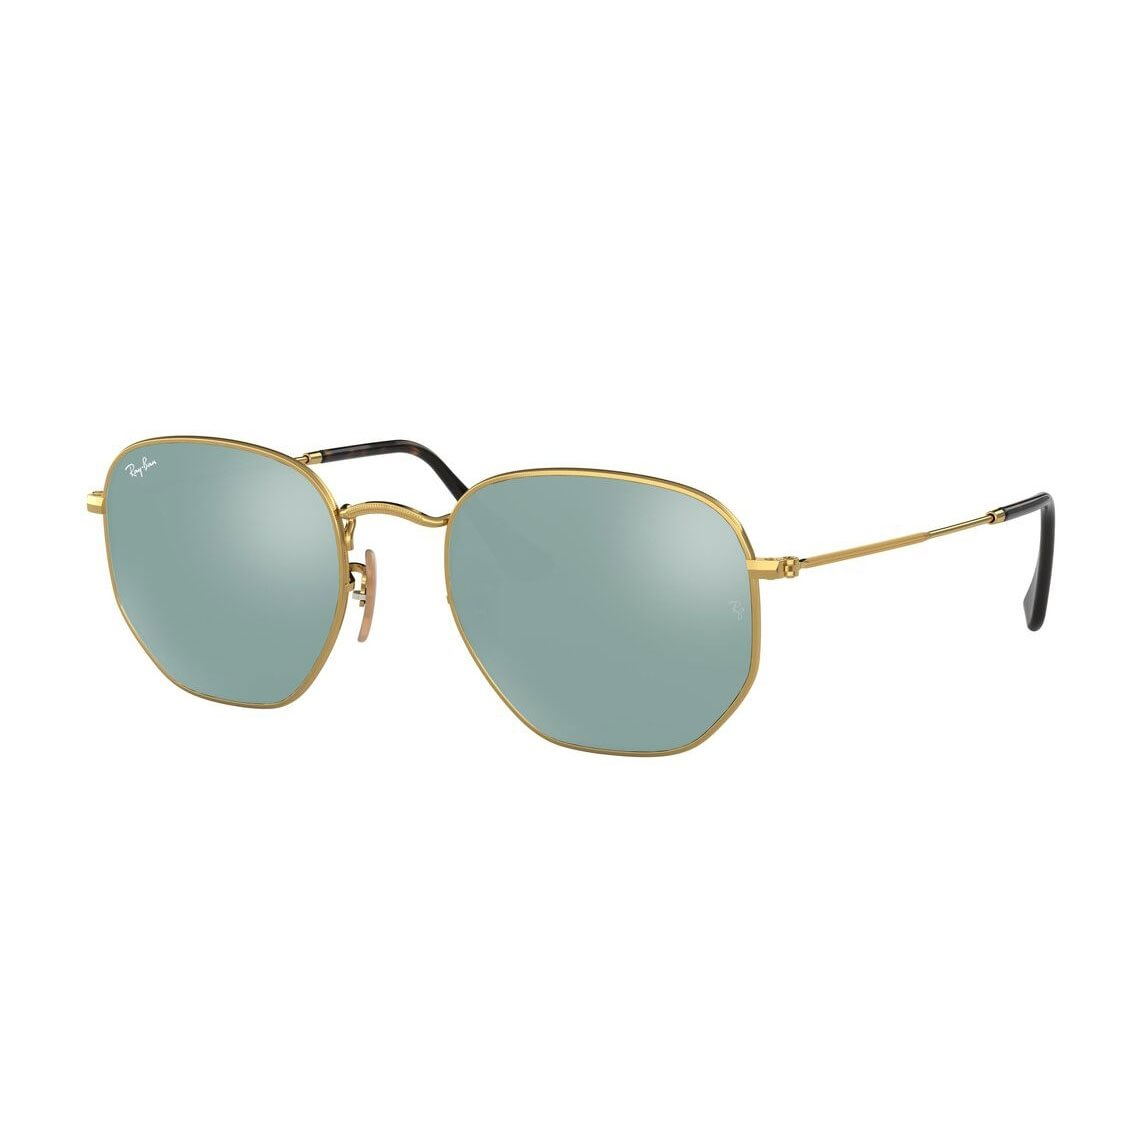 Ray-Ban Hexagonal flat lenses RB3548N 001/30 51